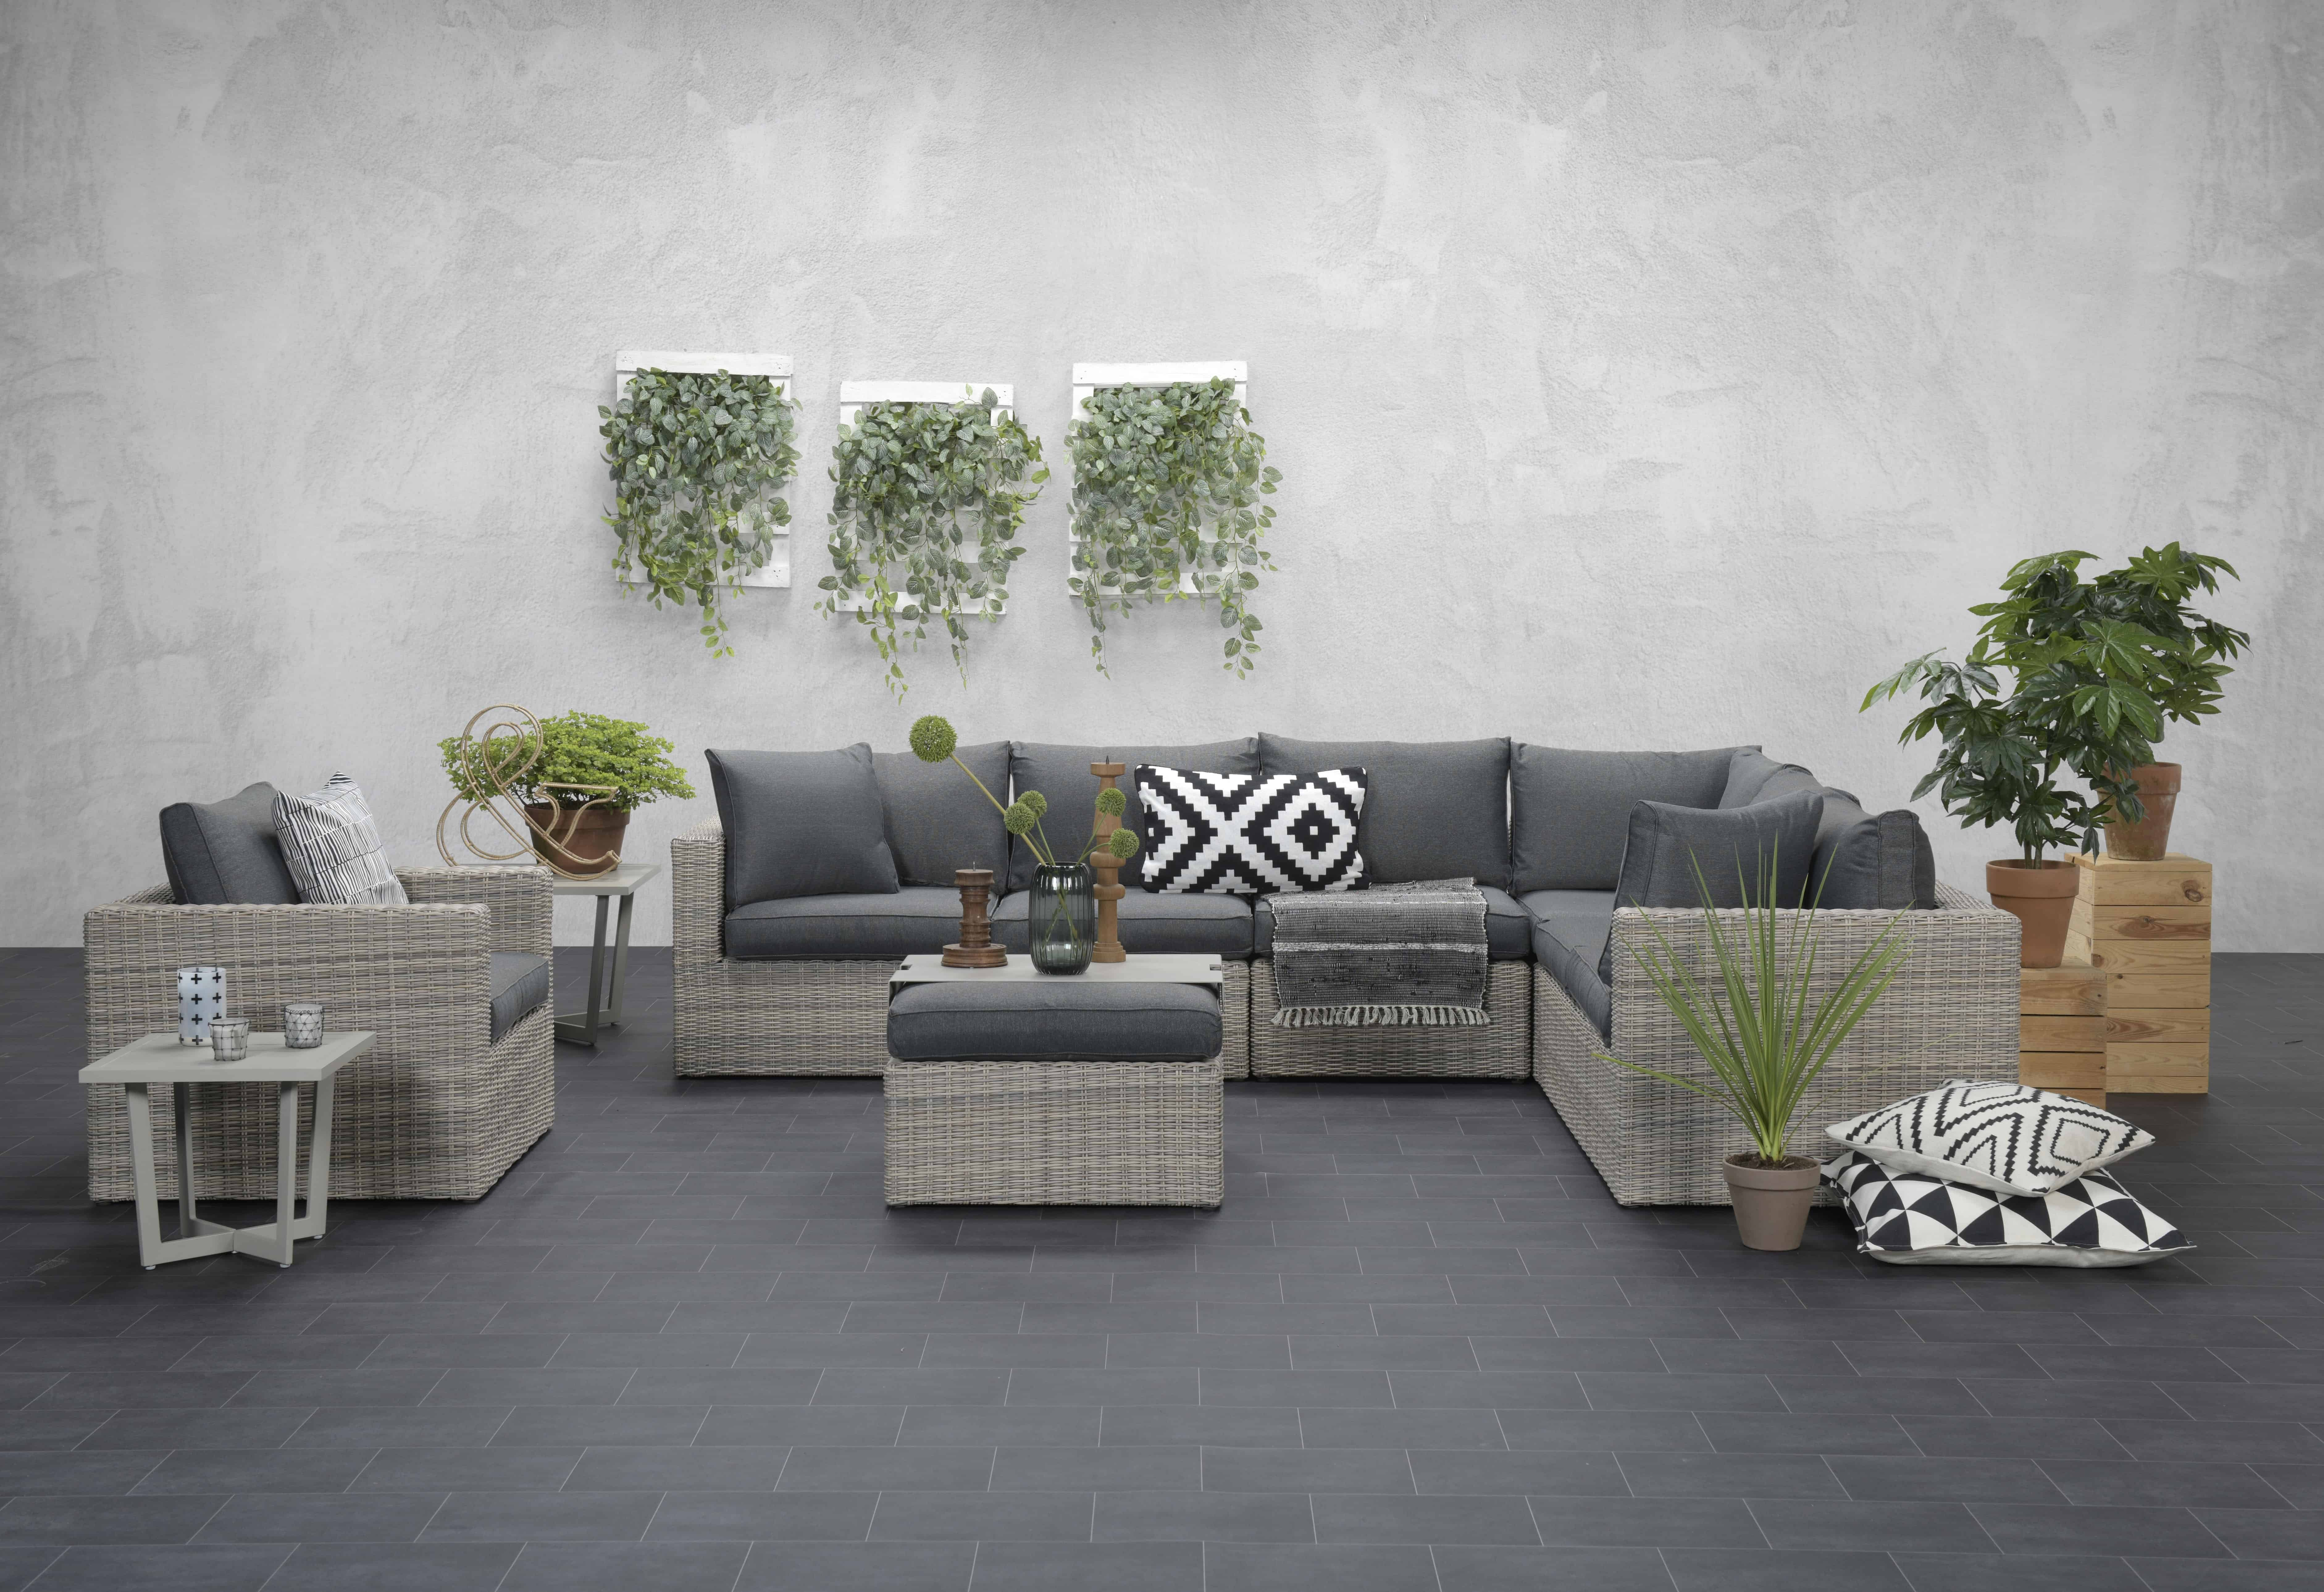 The Sousse Corner Sofa Set With Coffee Table - Garden Furniture For Sale Dublin Ireland